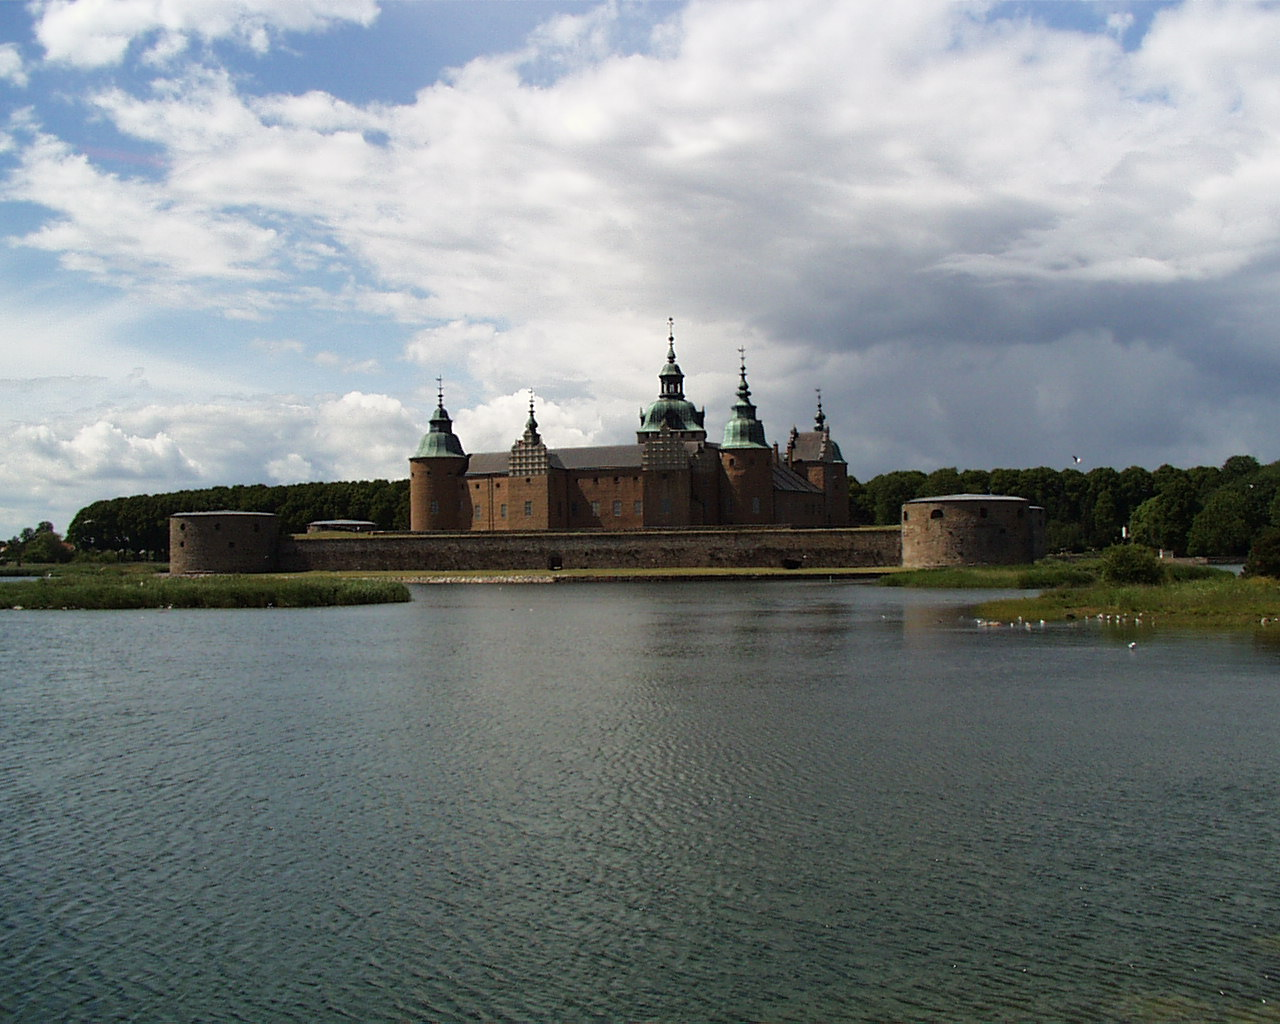 11. Kalmar slott